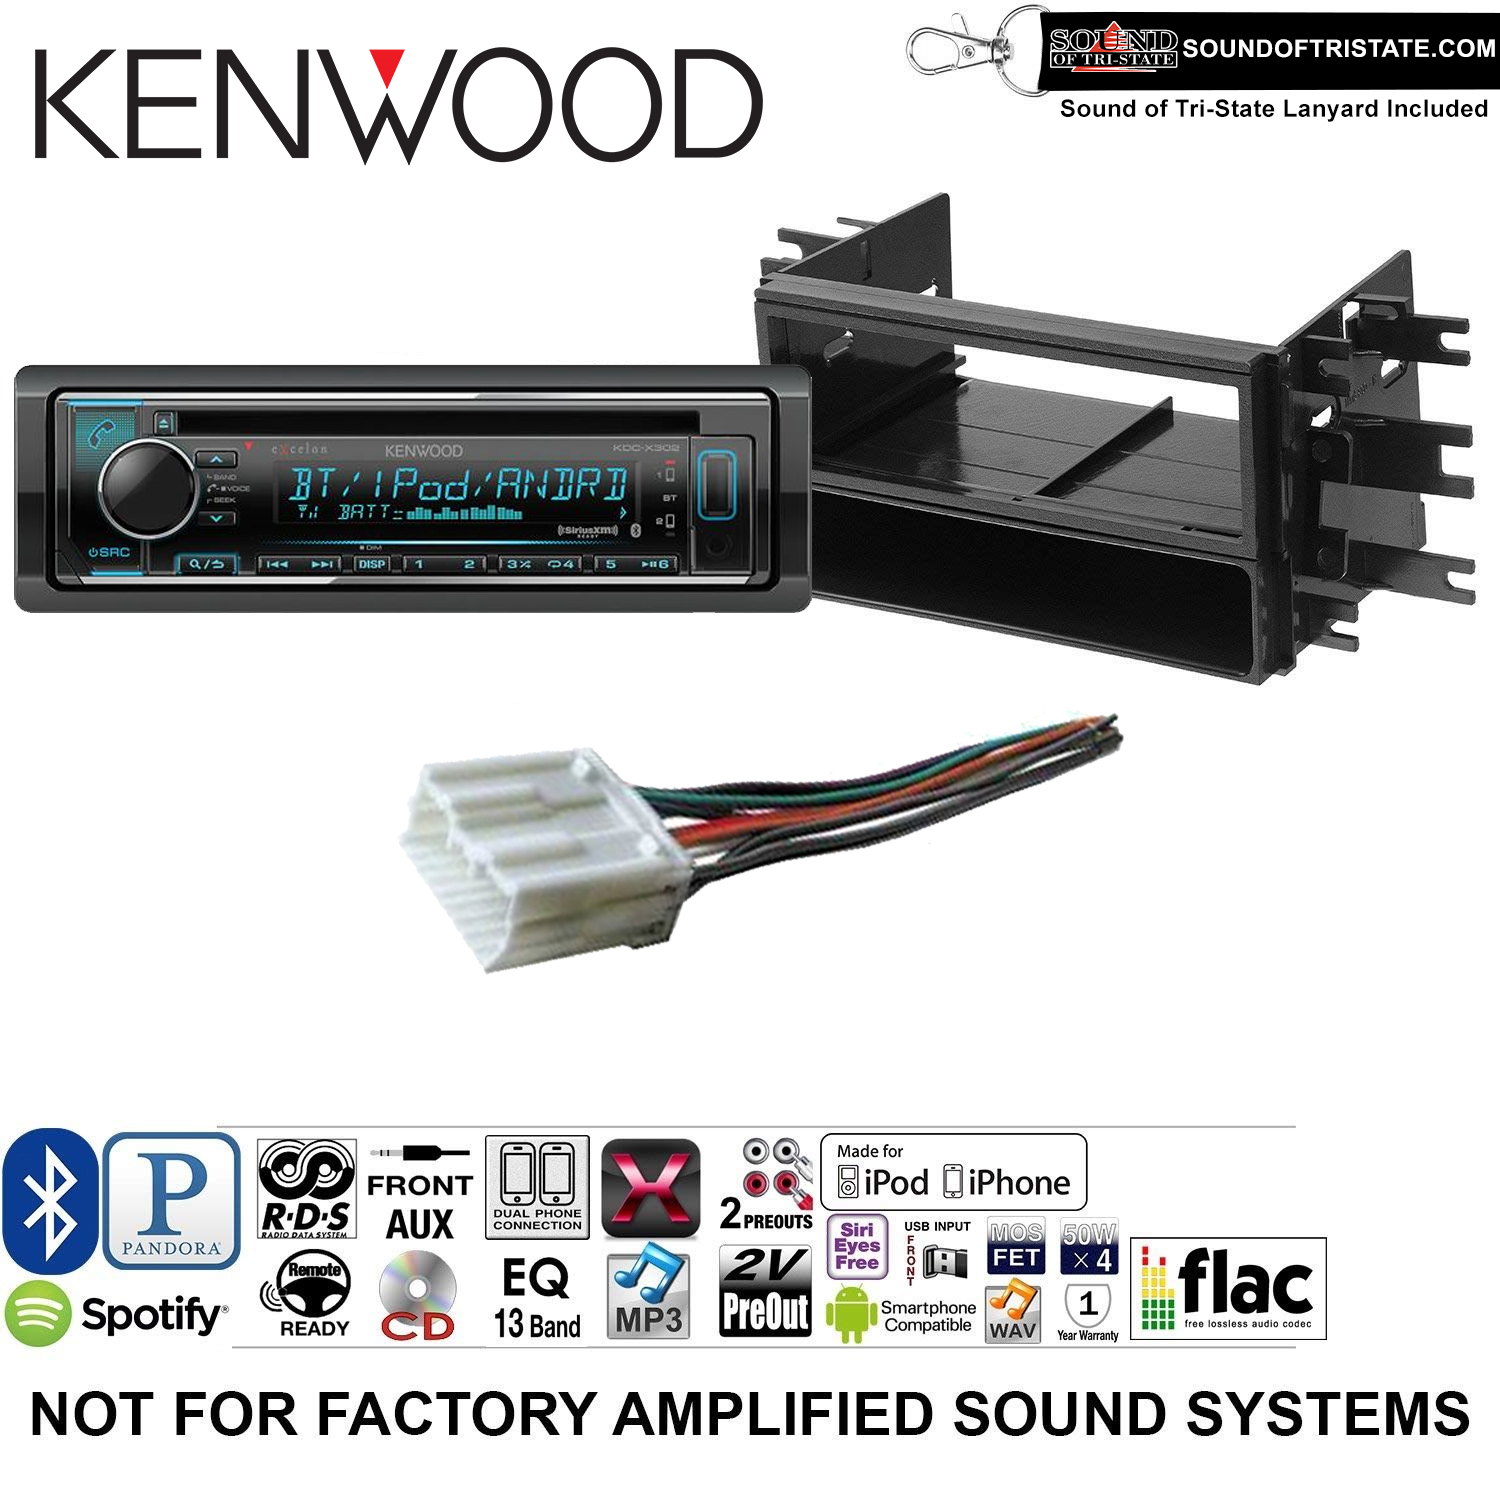 Kenwood KDCX302 Double Din Radio Install Kit with Bluetooth, CD Player, USB/AUX Fits 1995-2005 Mitsubishi Eclipse and a SOTS lanyard included